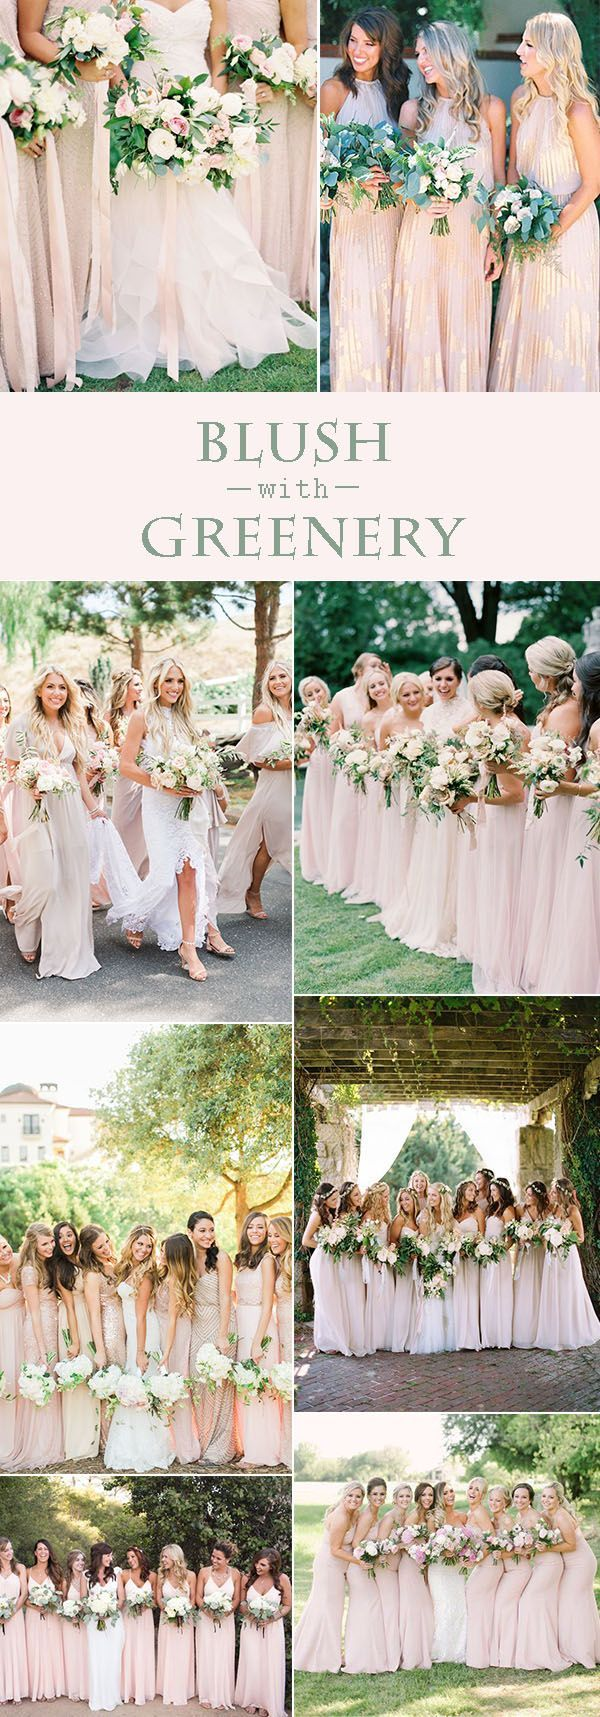 20 Trendy Blush & Greenery Wedding Color Ideas for Summer